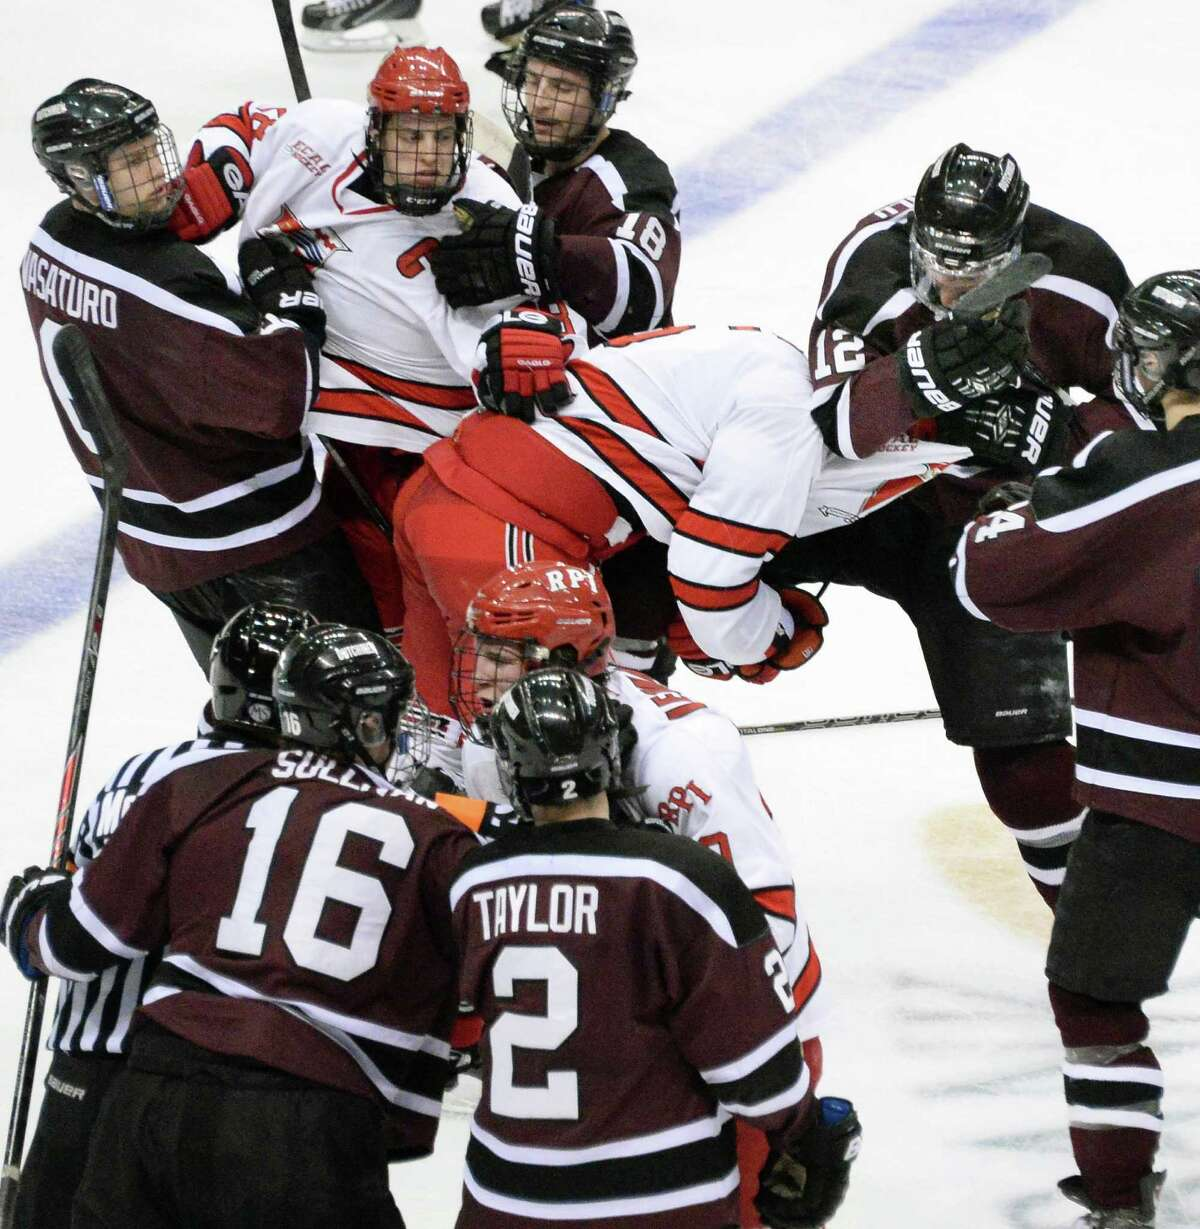 A bench clearing brawl breaks out after RPI beats Union College for the Mayor's Cup at the Times Union Center Saturday Jan. 25, 2014, in Albany, NY. (John Carl D'Annibale / Times Union)